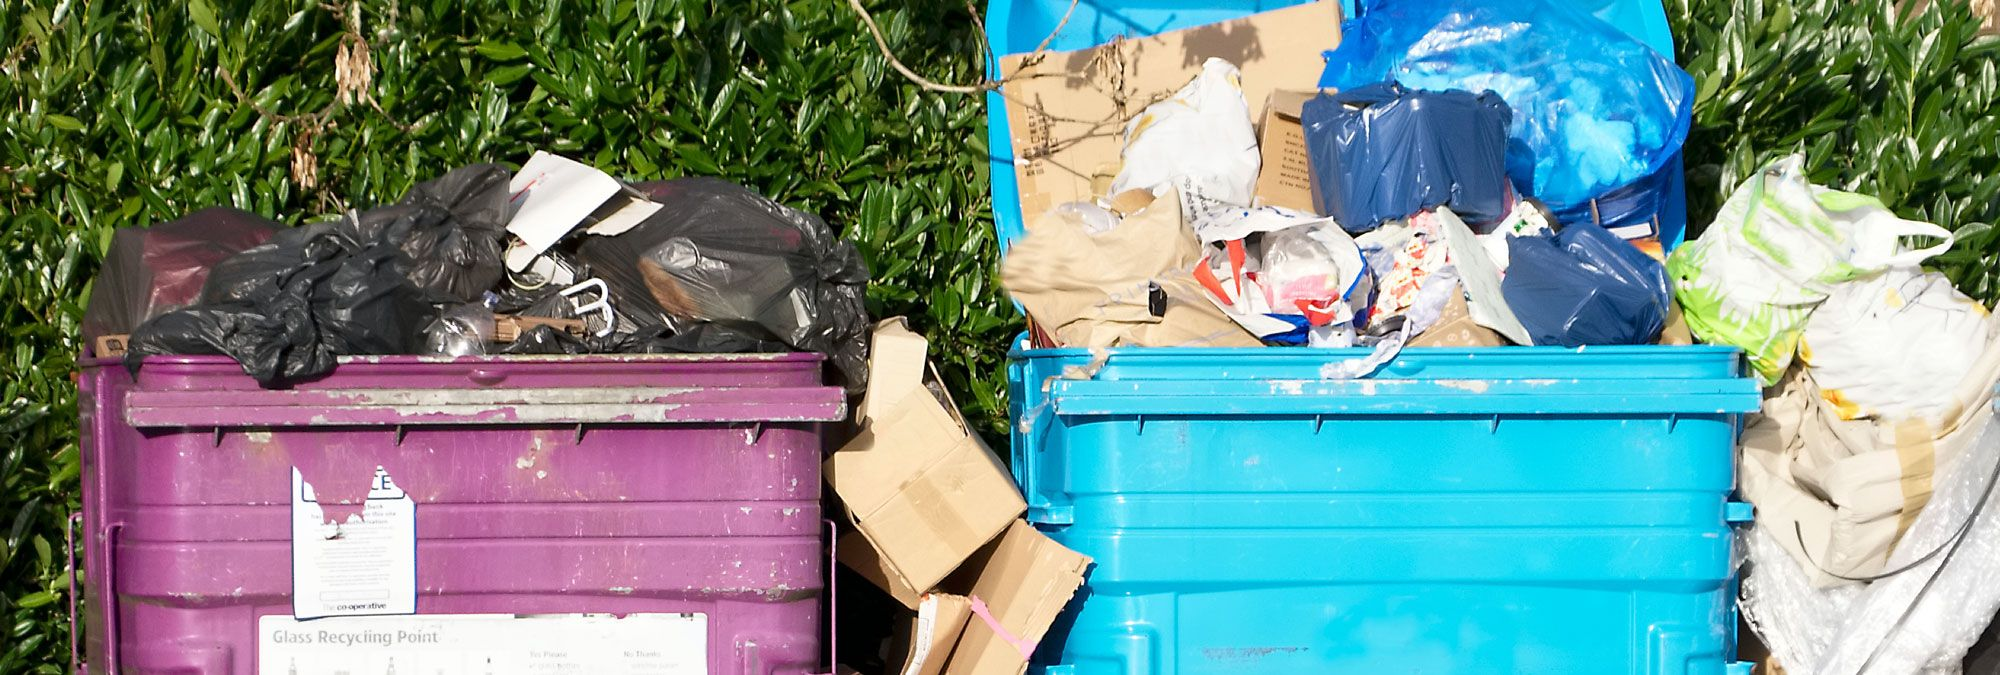 What to do About Overflowing Rubbish Bins